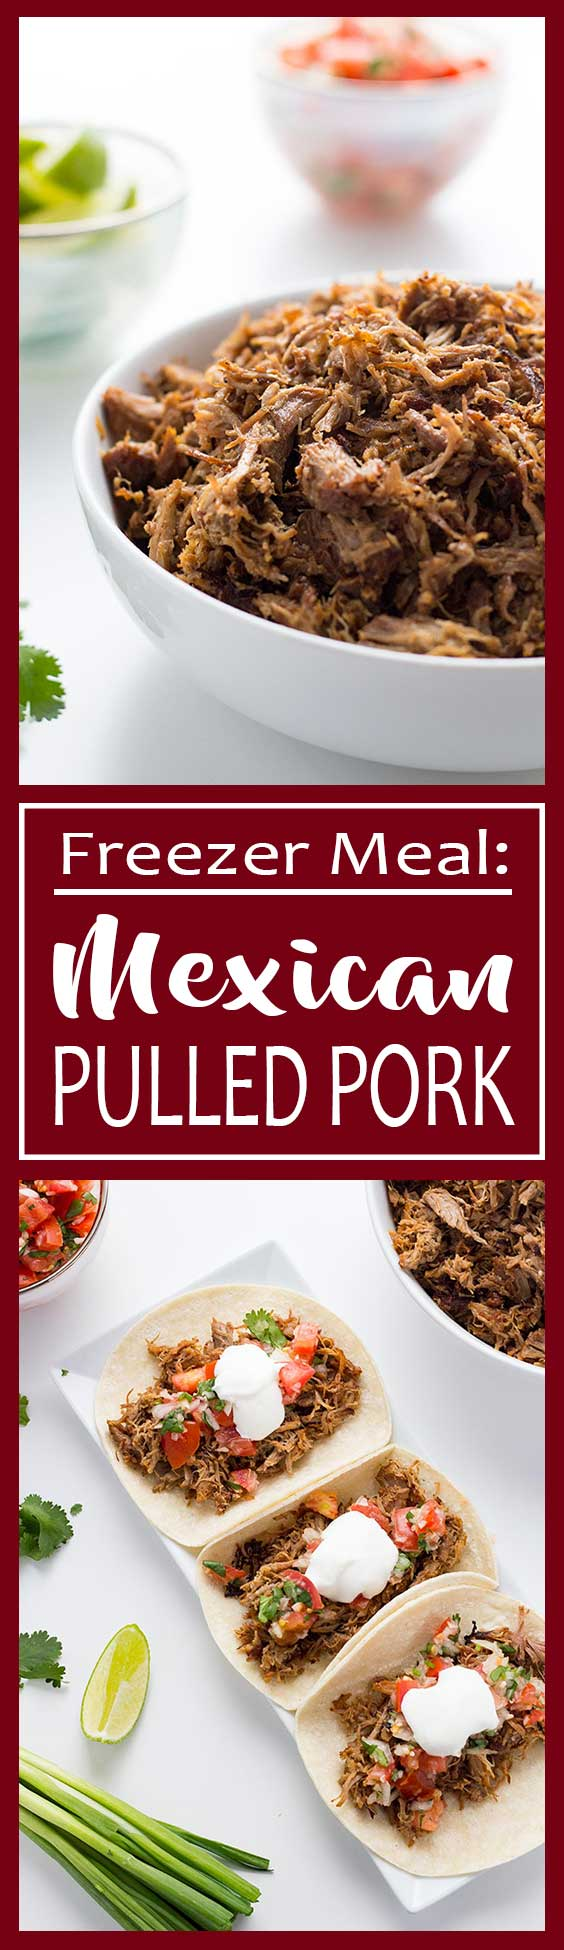 A great dinner multitasker, this Mexican Pulled Pork (Carnitas) can be cooked in the slow cooker or pressure cooker, and can be used in a variety of meals! Cook once and eat in different meals all week!!